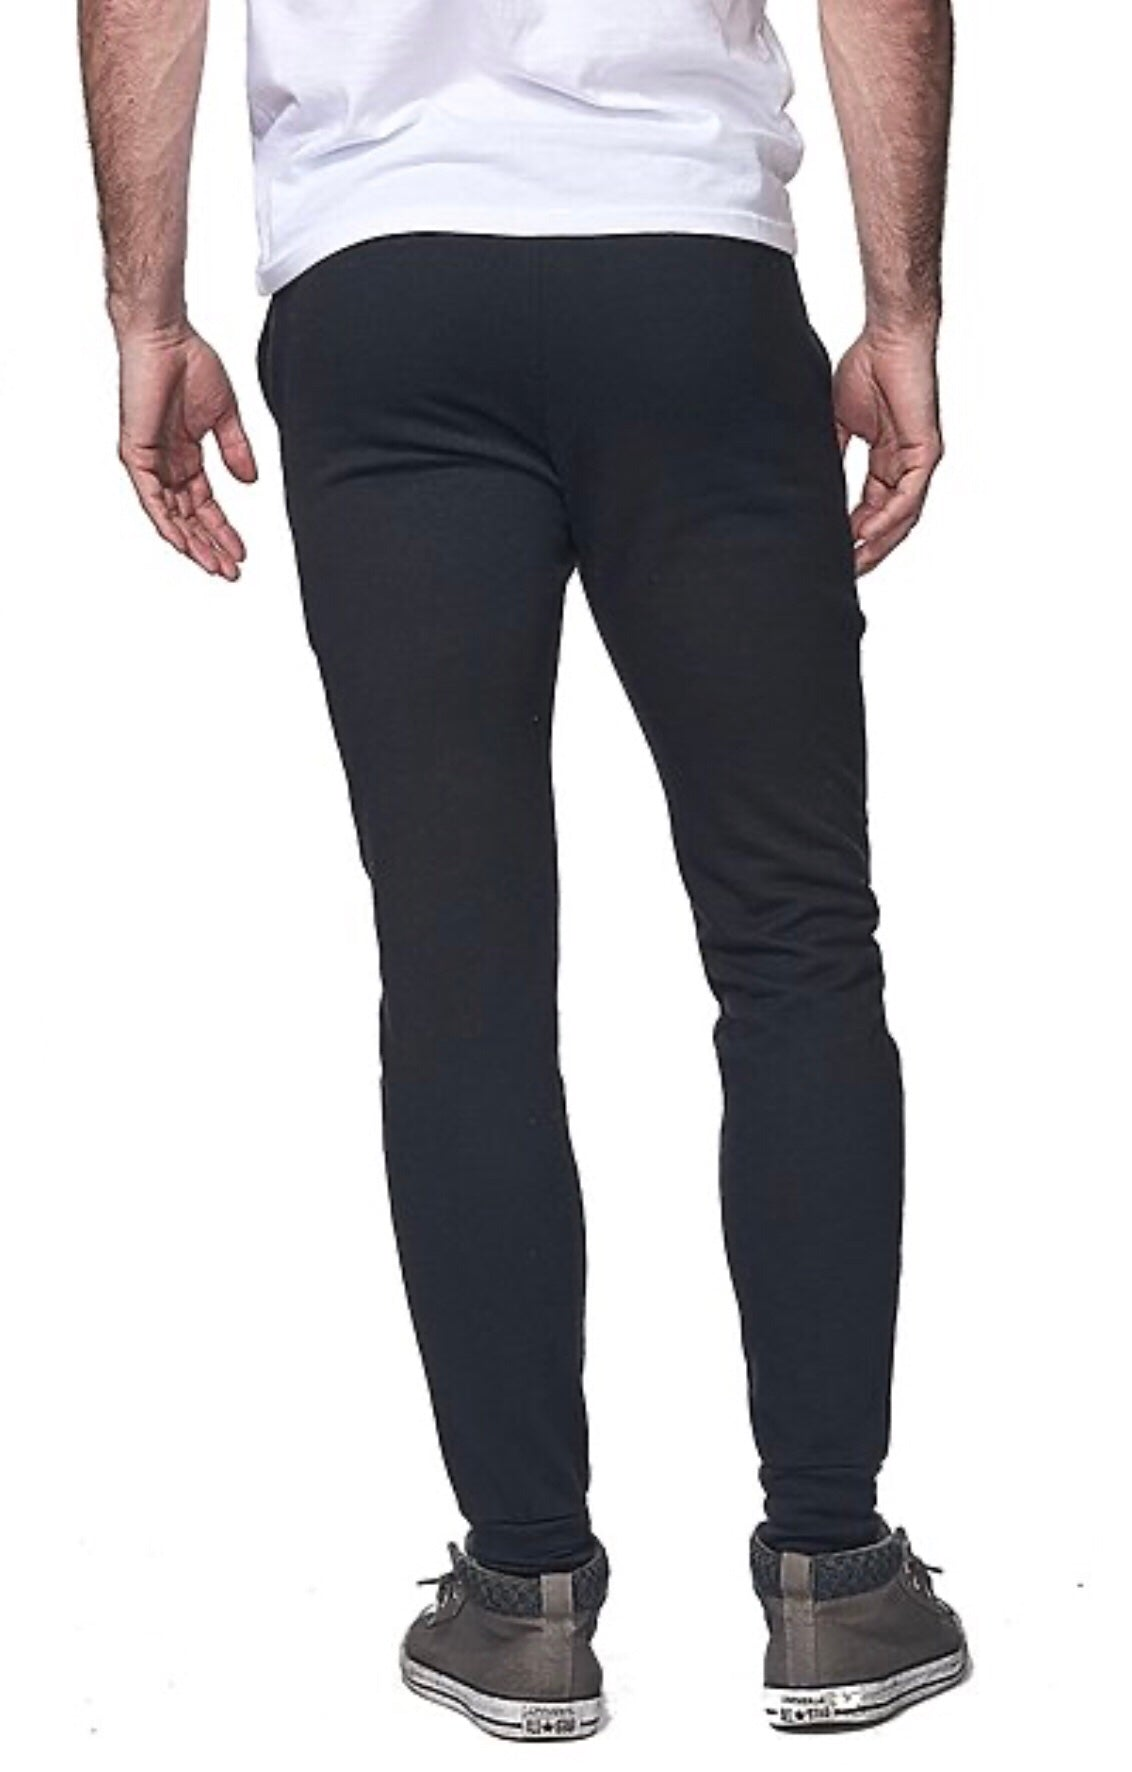 (S/S 2020) French Terry Unisex Joggers in BLACK ORGANIC RPET